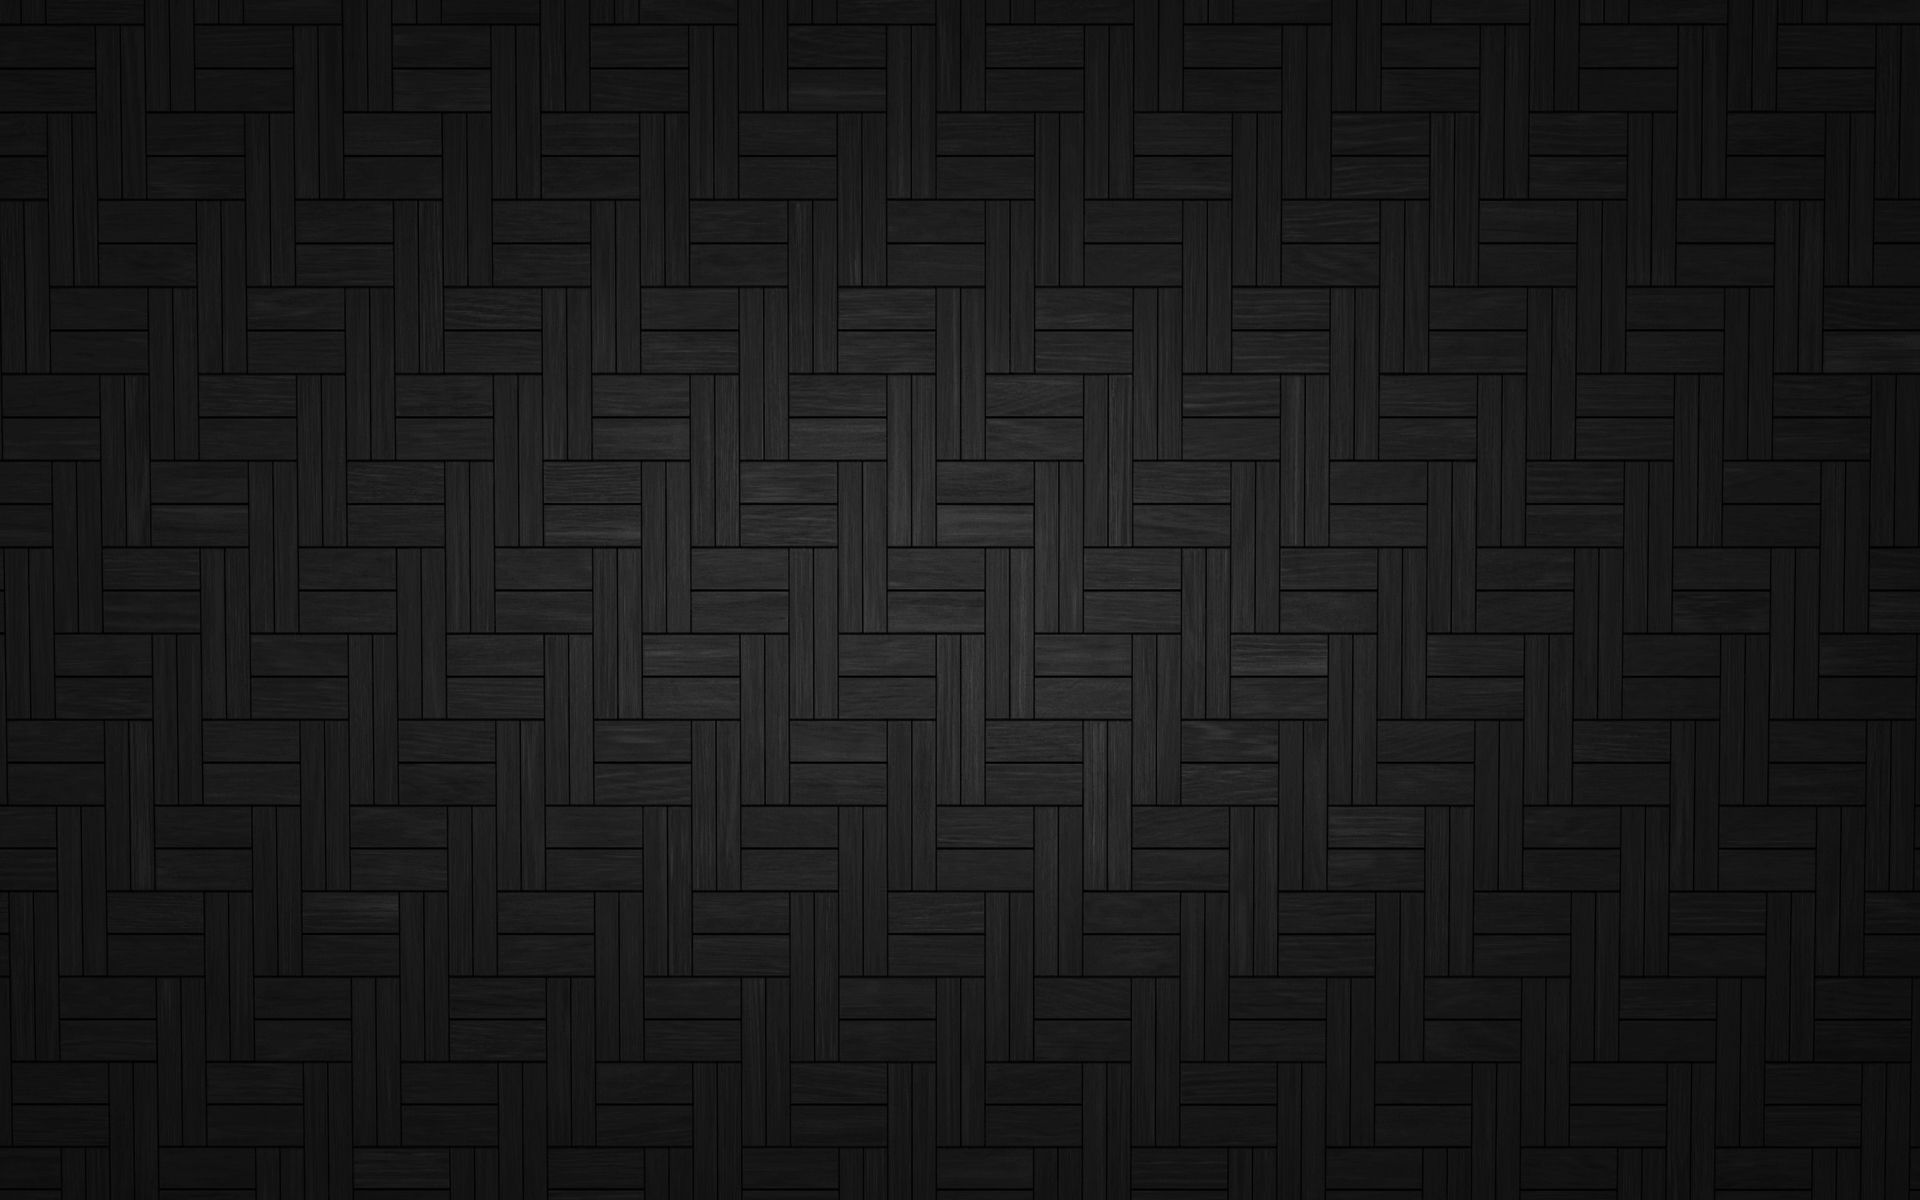 30 Dark Theme Wallpaper By Humbert Attwoull Goldwallpapers Com